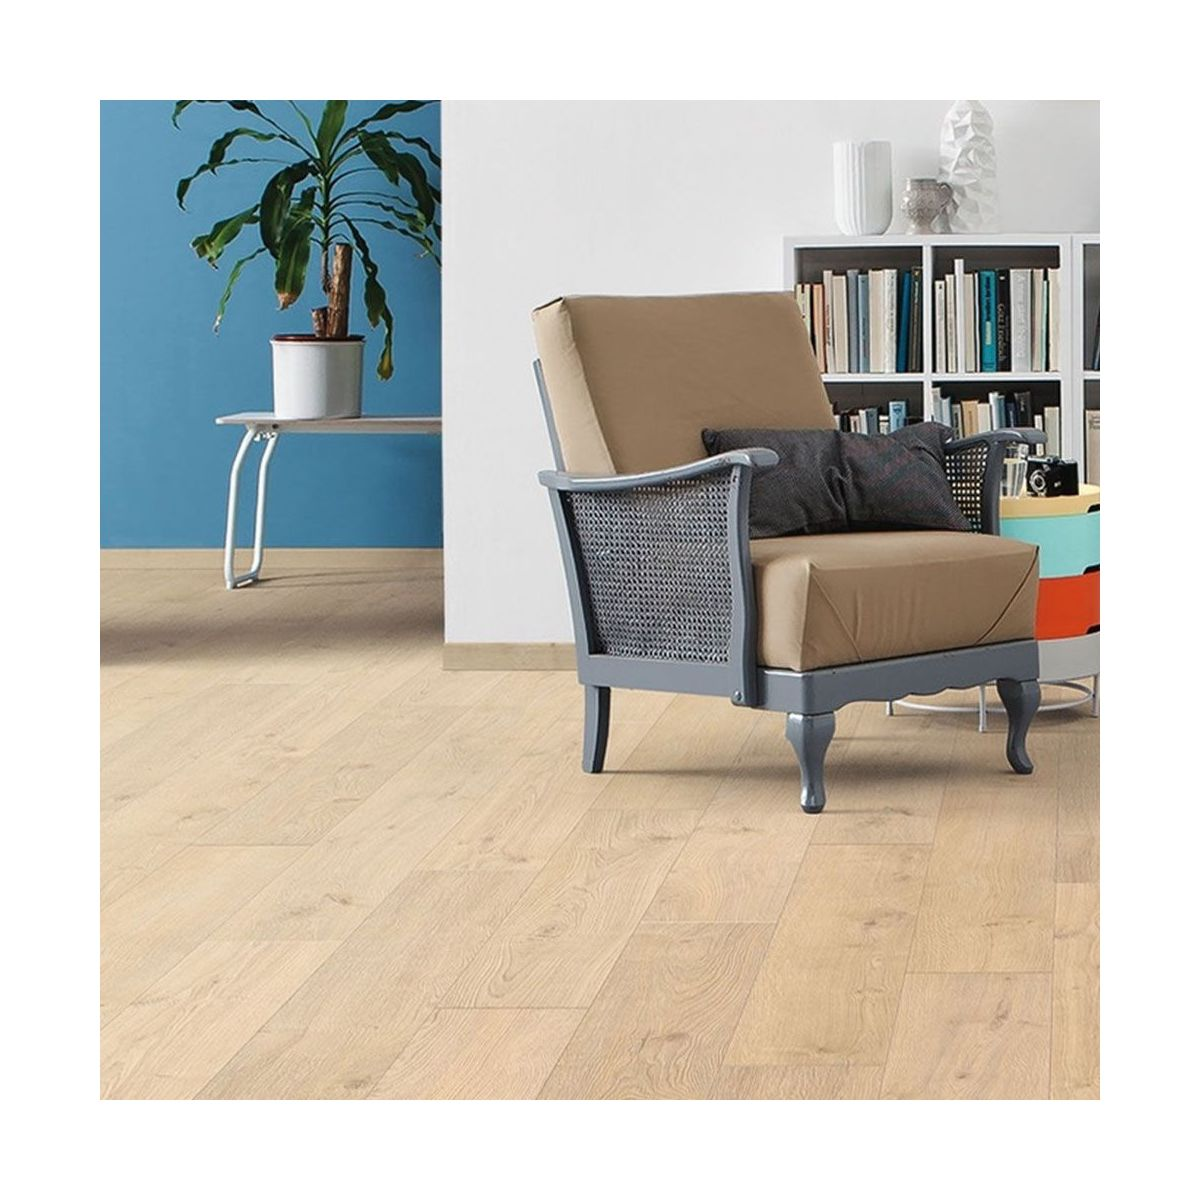 prix m2 parquet stratifi cheap parquet stratifi kronofix cottage san diego with prix m2 parquet. Black Bedroom Furniture Sets. Home Design Ideas